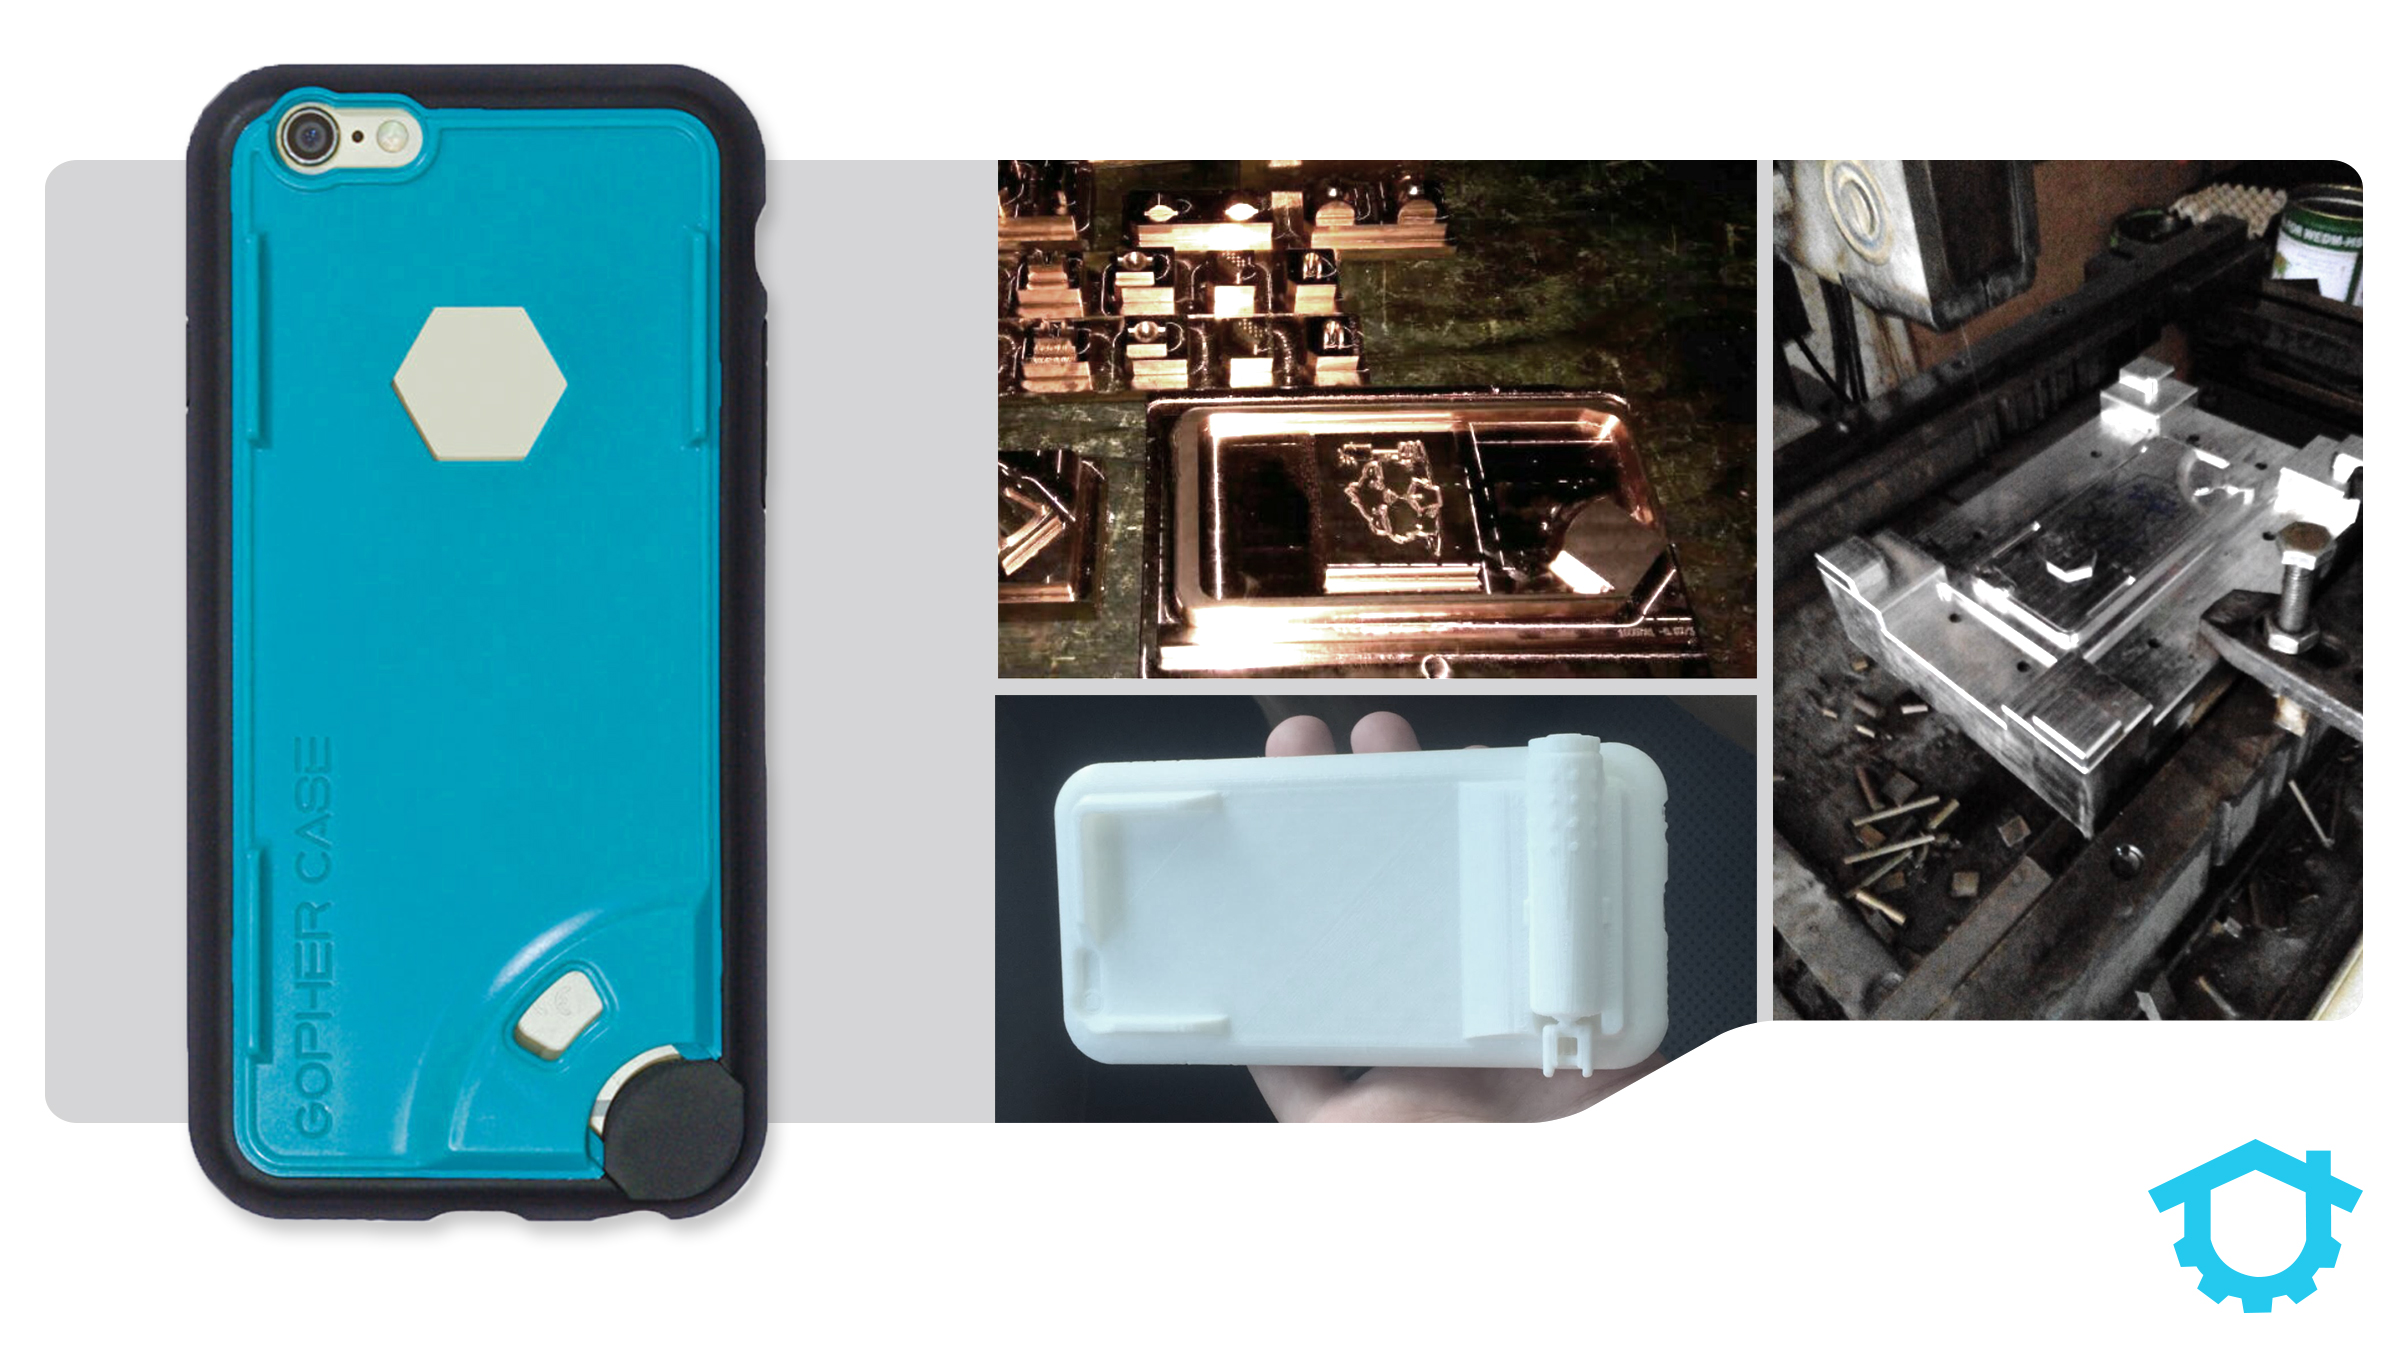 When it comes to manufacturing, attention to detail matters. This is an image of some of the Gopher Case components.